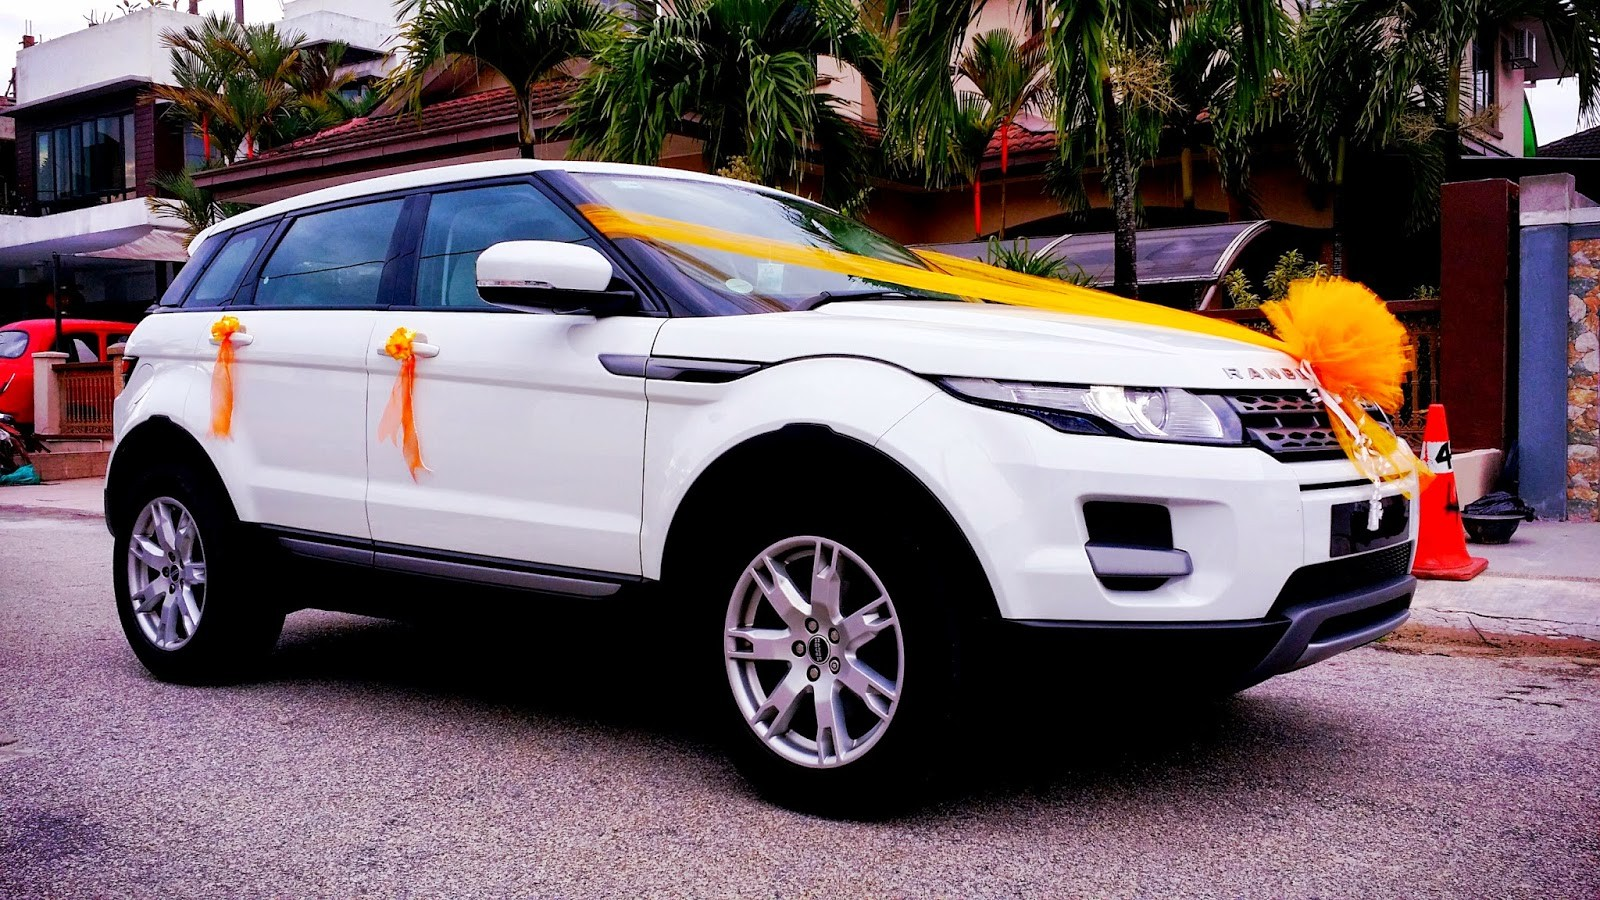 Range Rover rental for wedding, Range Rover Evoque Hire in Chandigarh